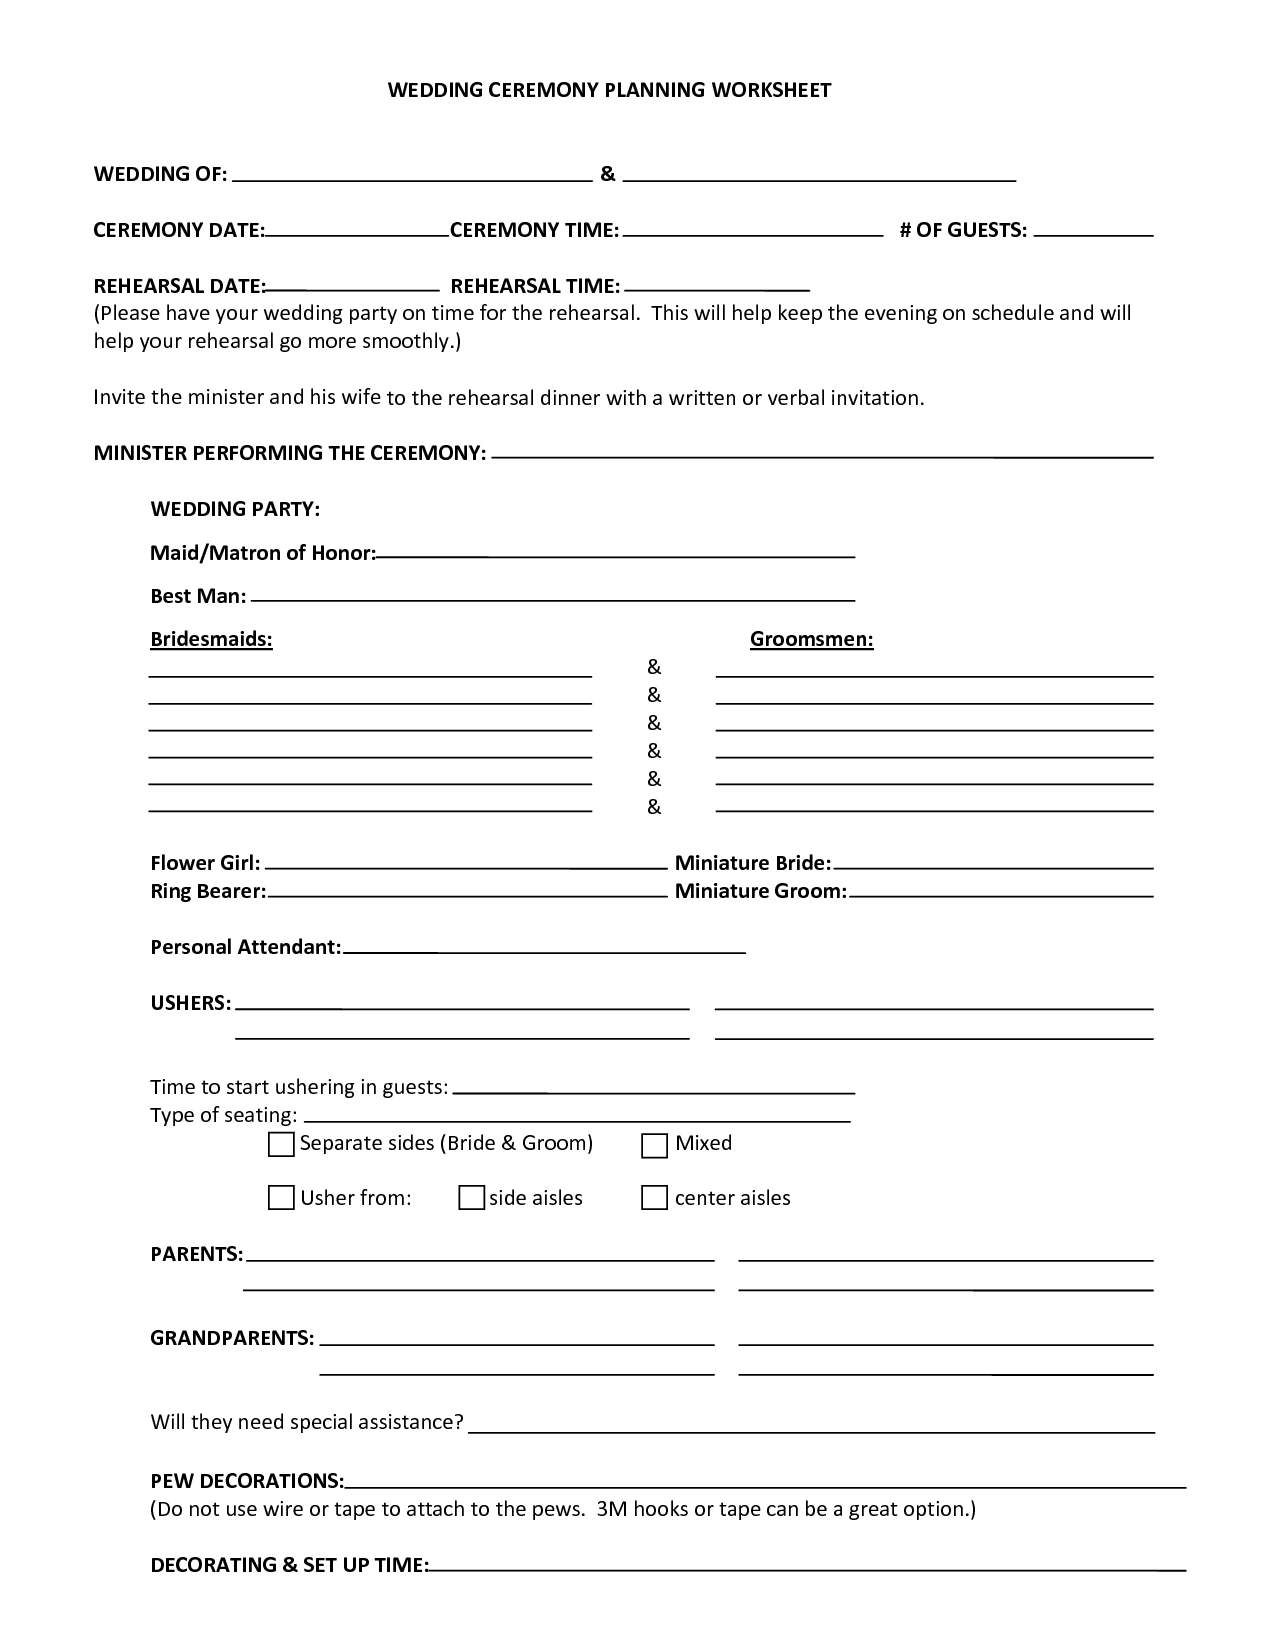 Catholic Funeral Planning Worksheet And Funeral Planning Guide Printable Form